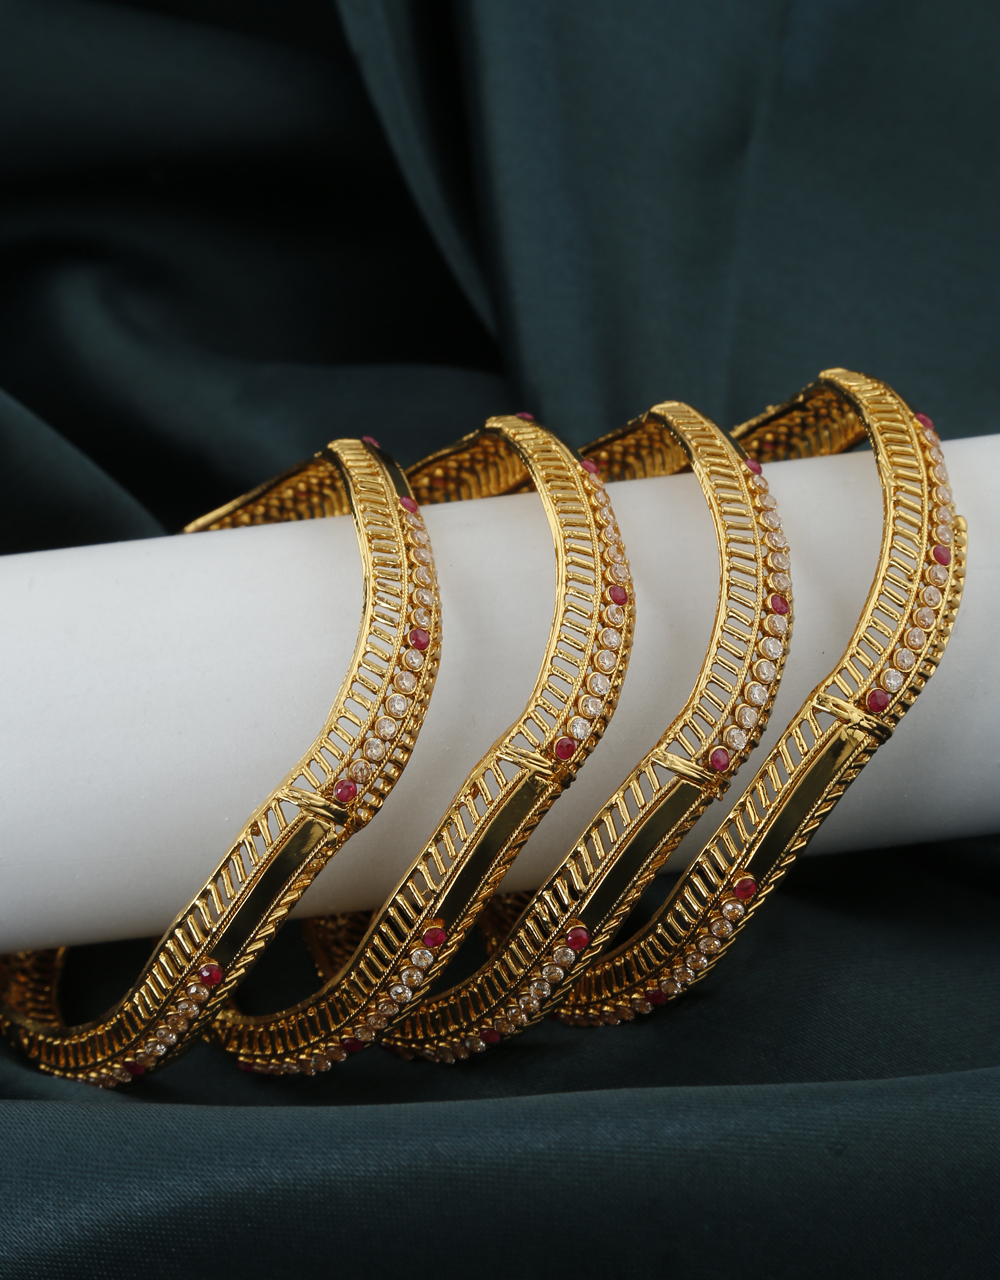 Adorable Golden Finish Embedded With White and Pink Colour Traditional Bangles.